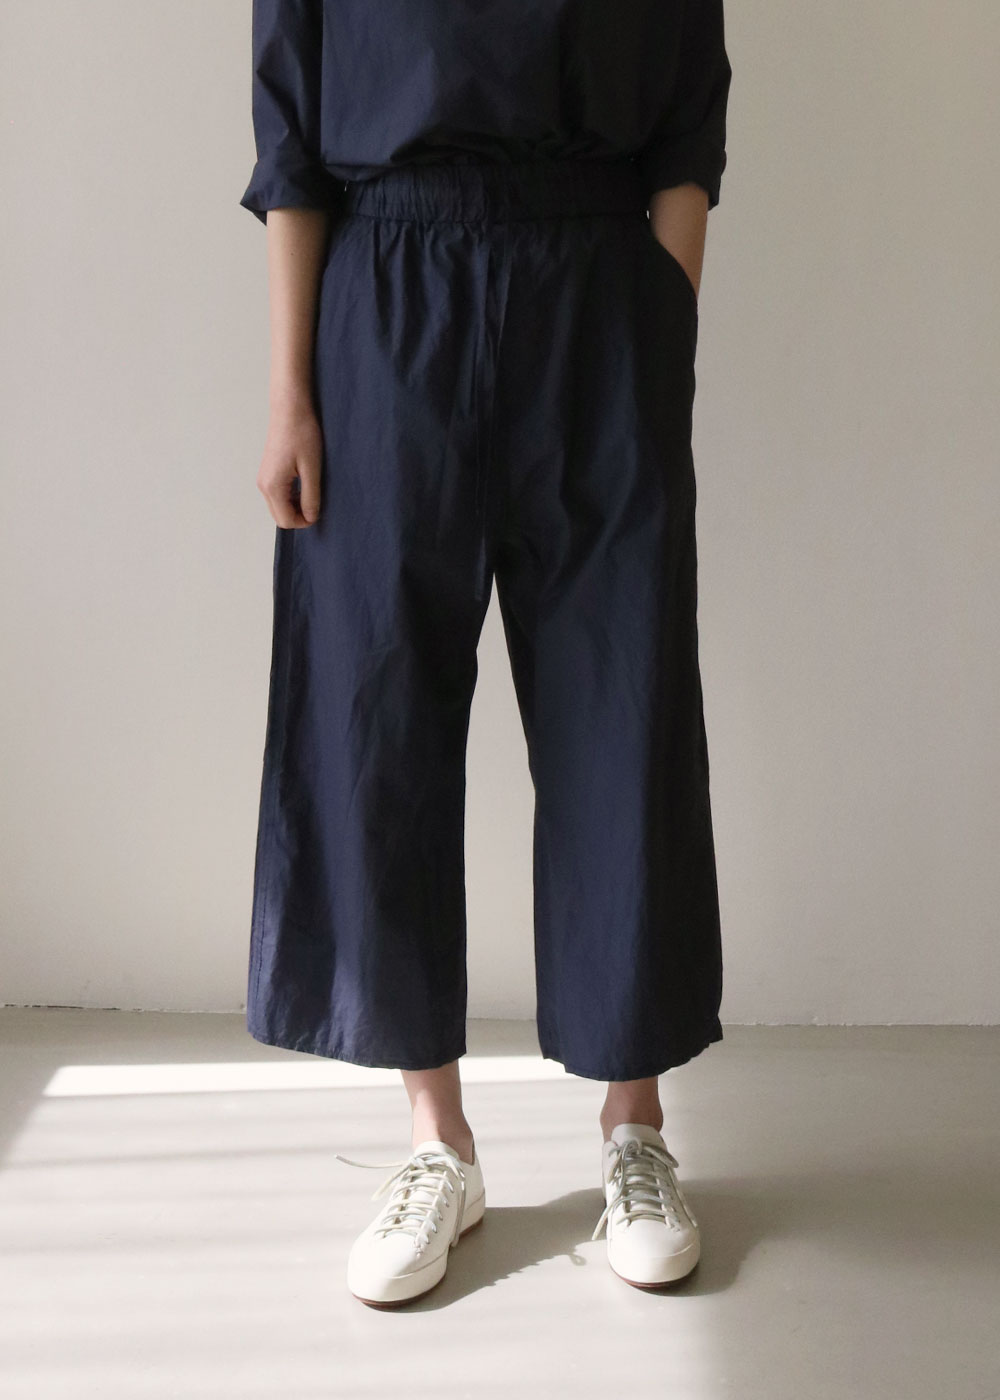 WIDE & SHORT TROUSERS TC - navy